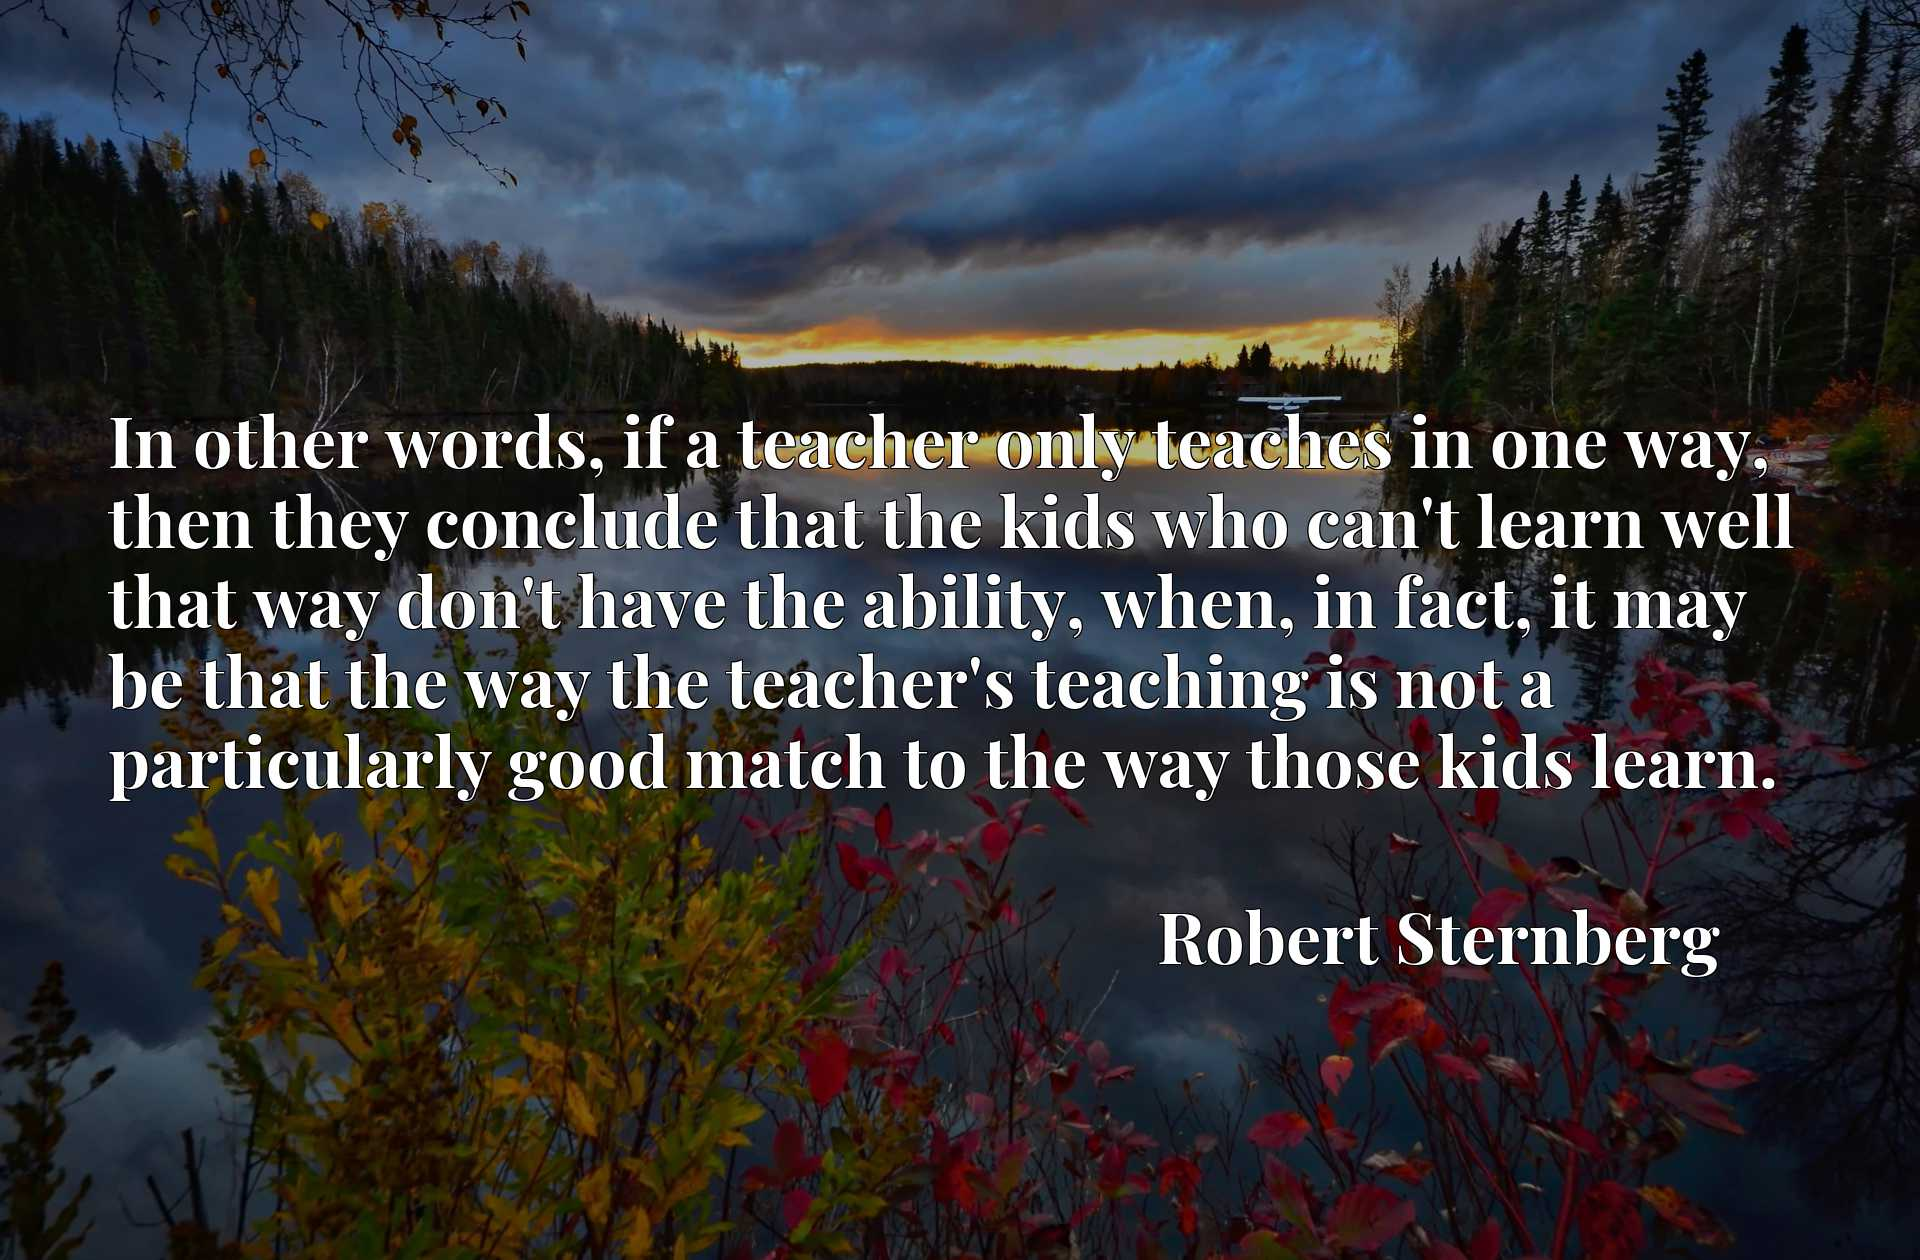 In other words, if a teacher only teaches in one way, then they conclude that the kids who can't learn well that way don't have the ability, when, in fact, it may be that the way the teacher's teaching is not a particularly good match to the way those kids learn.